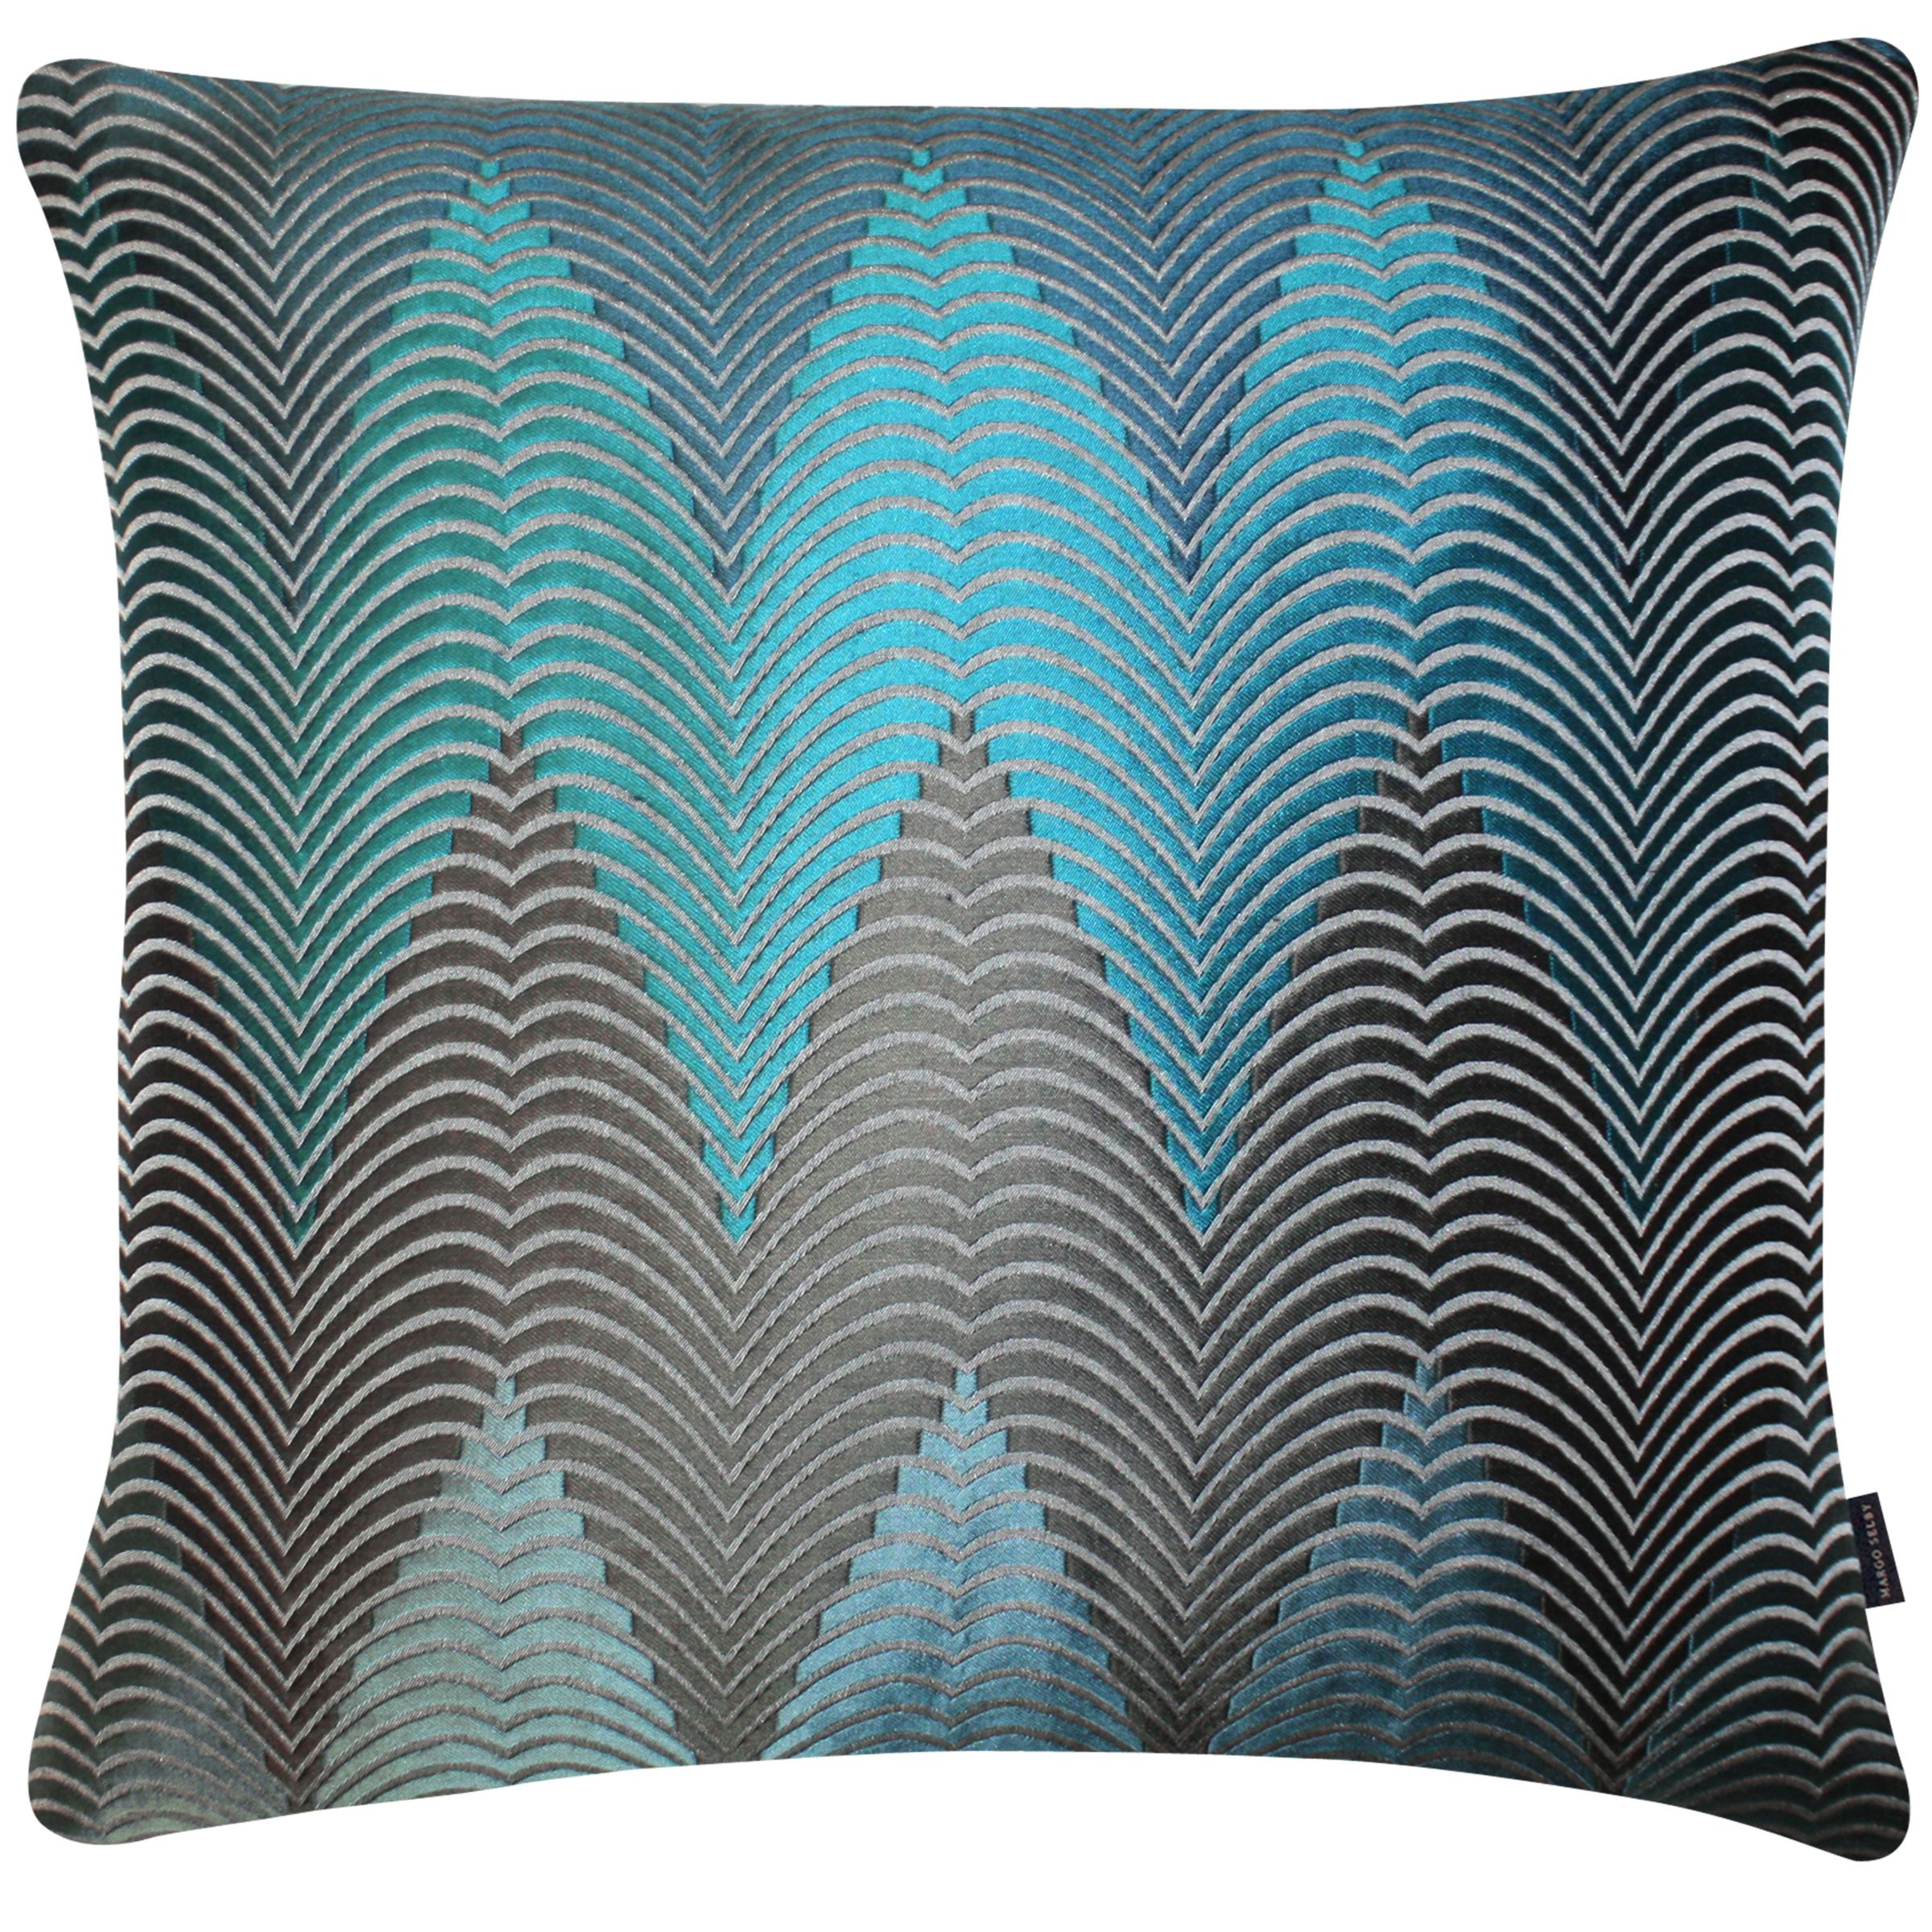 Margo Selby for John Lewis Margo Selby for John Lewis Mora Cushion, Multi